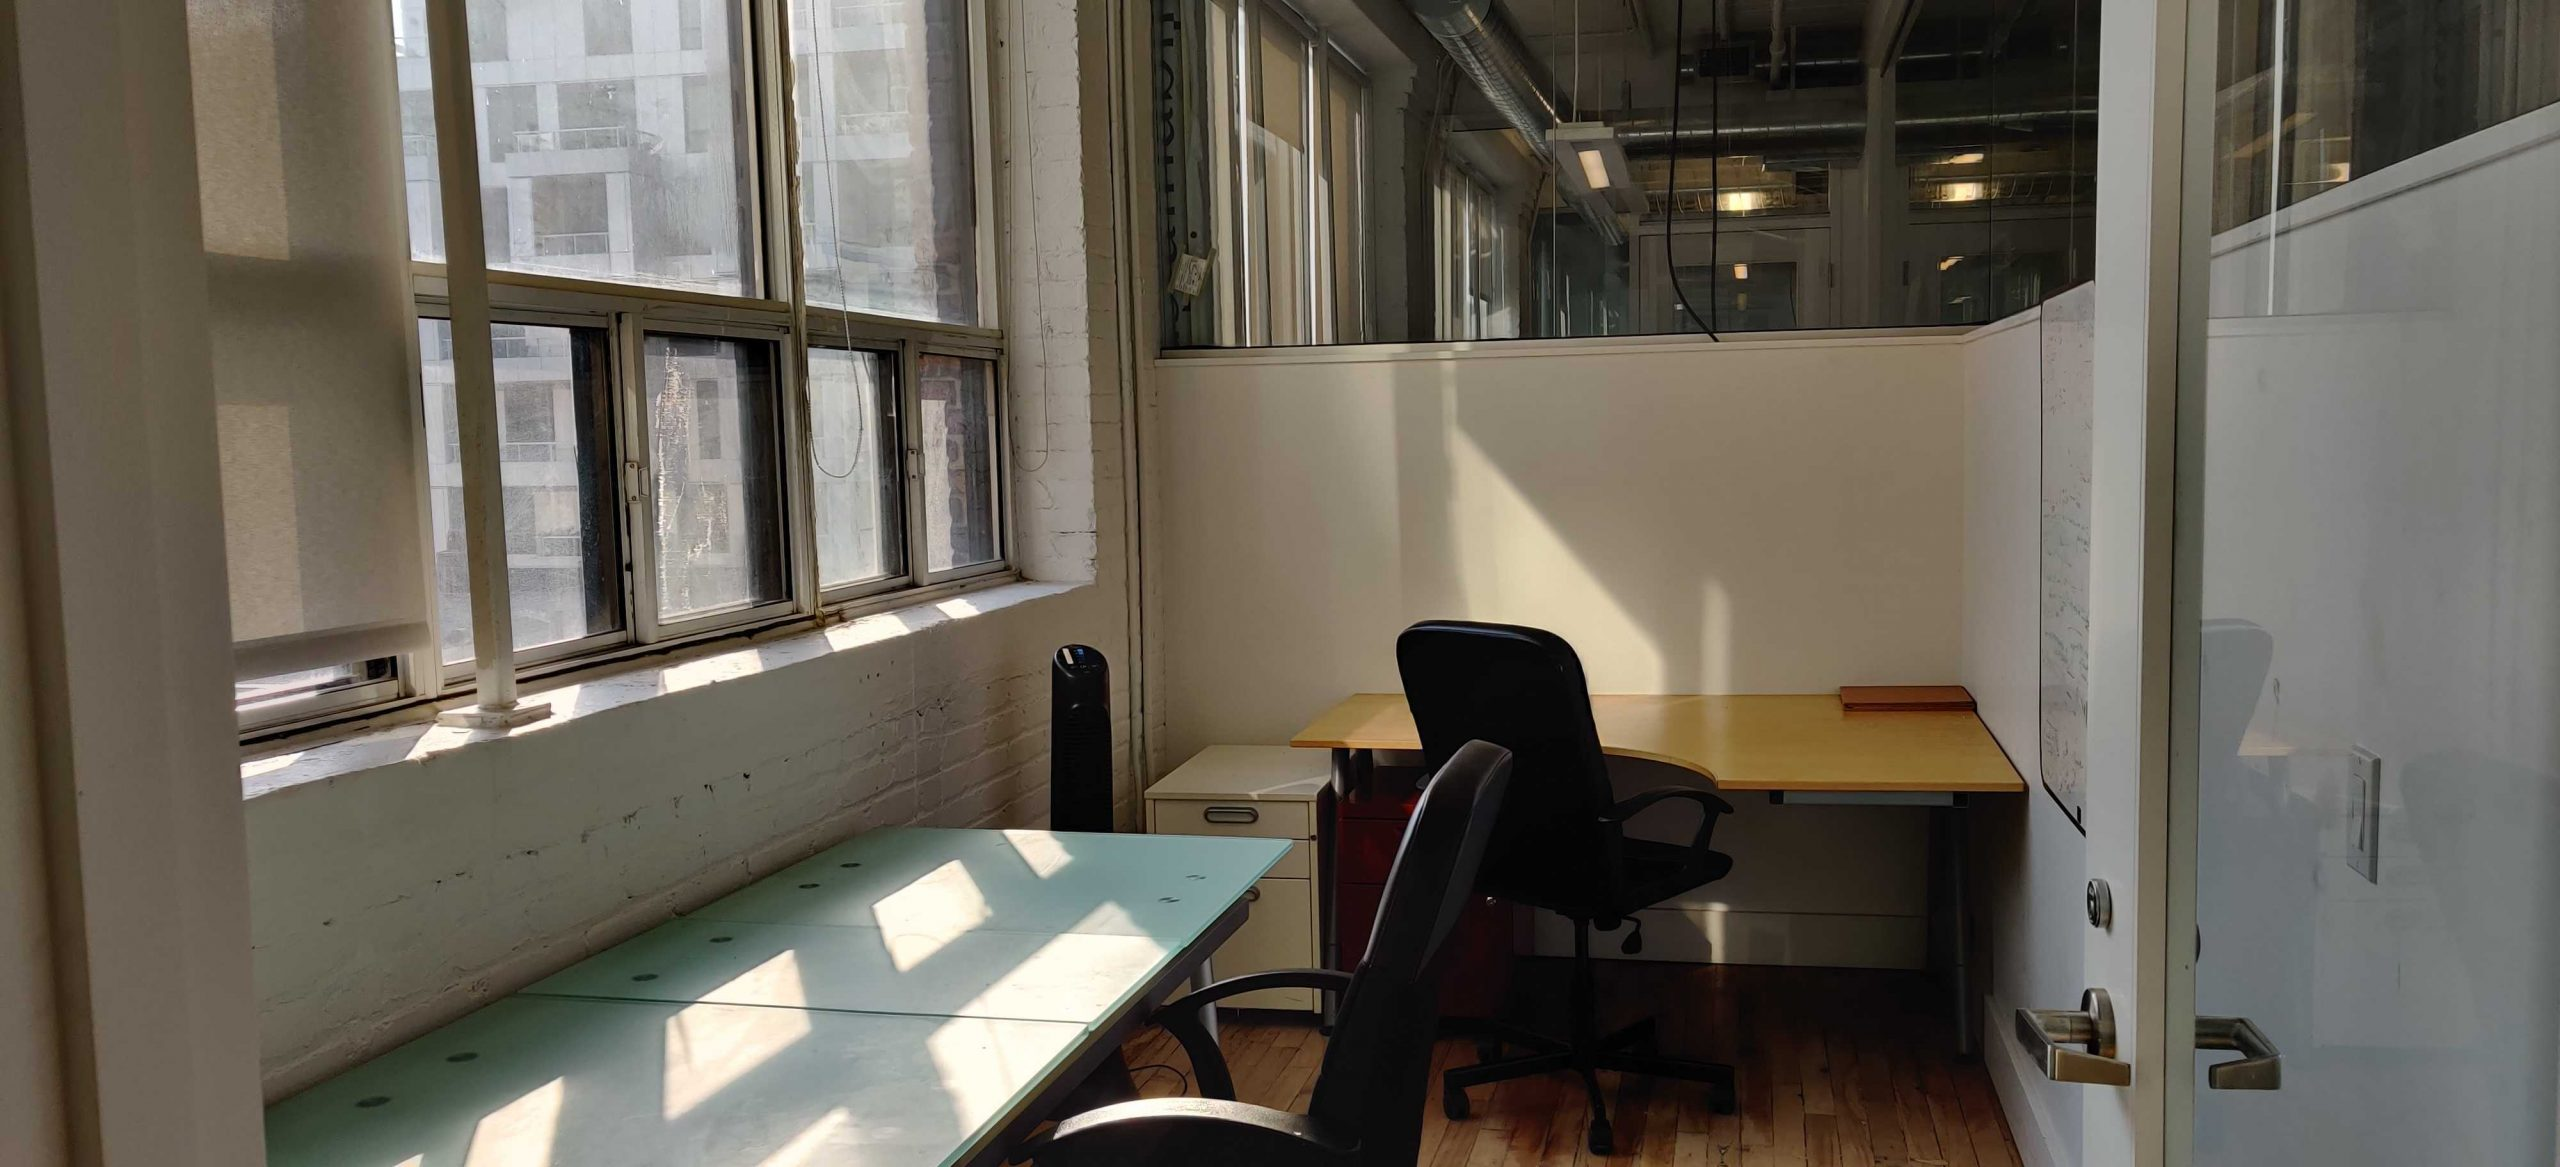 CSI Spadina #412 is a private office with lots of natural light. Perfect for small teams of 2-4.